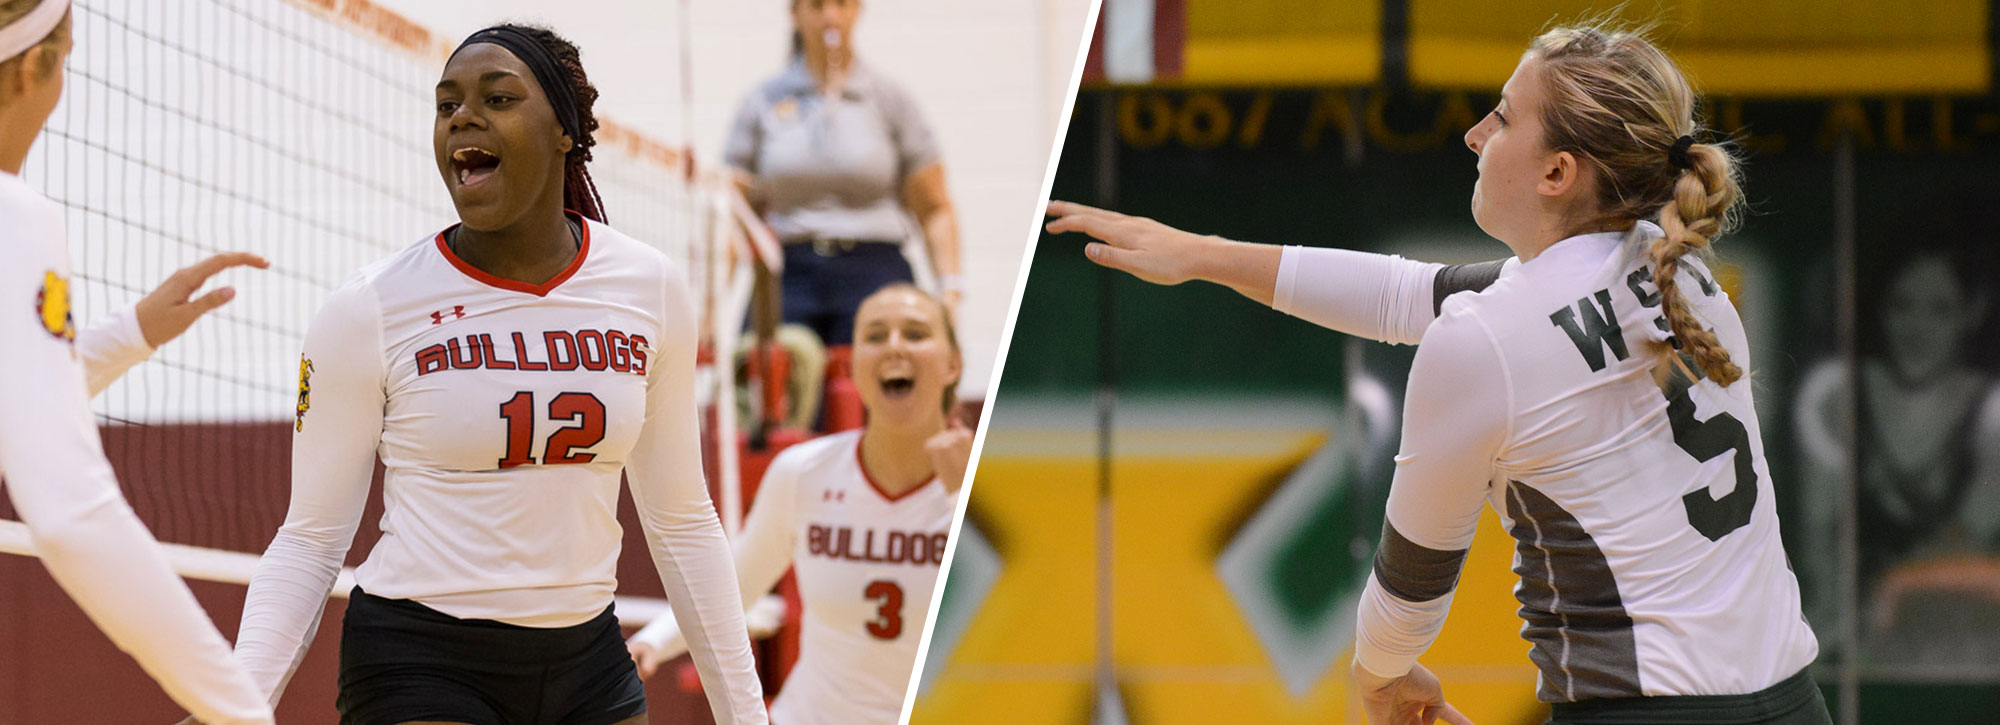 Ferris State's Buckley, Wayne State's Richardson Earn GLIAC Volleyball Weekly Accolades